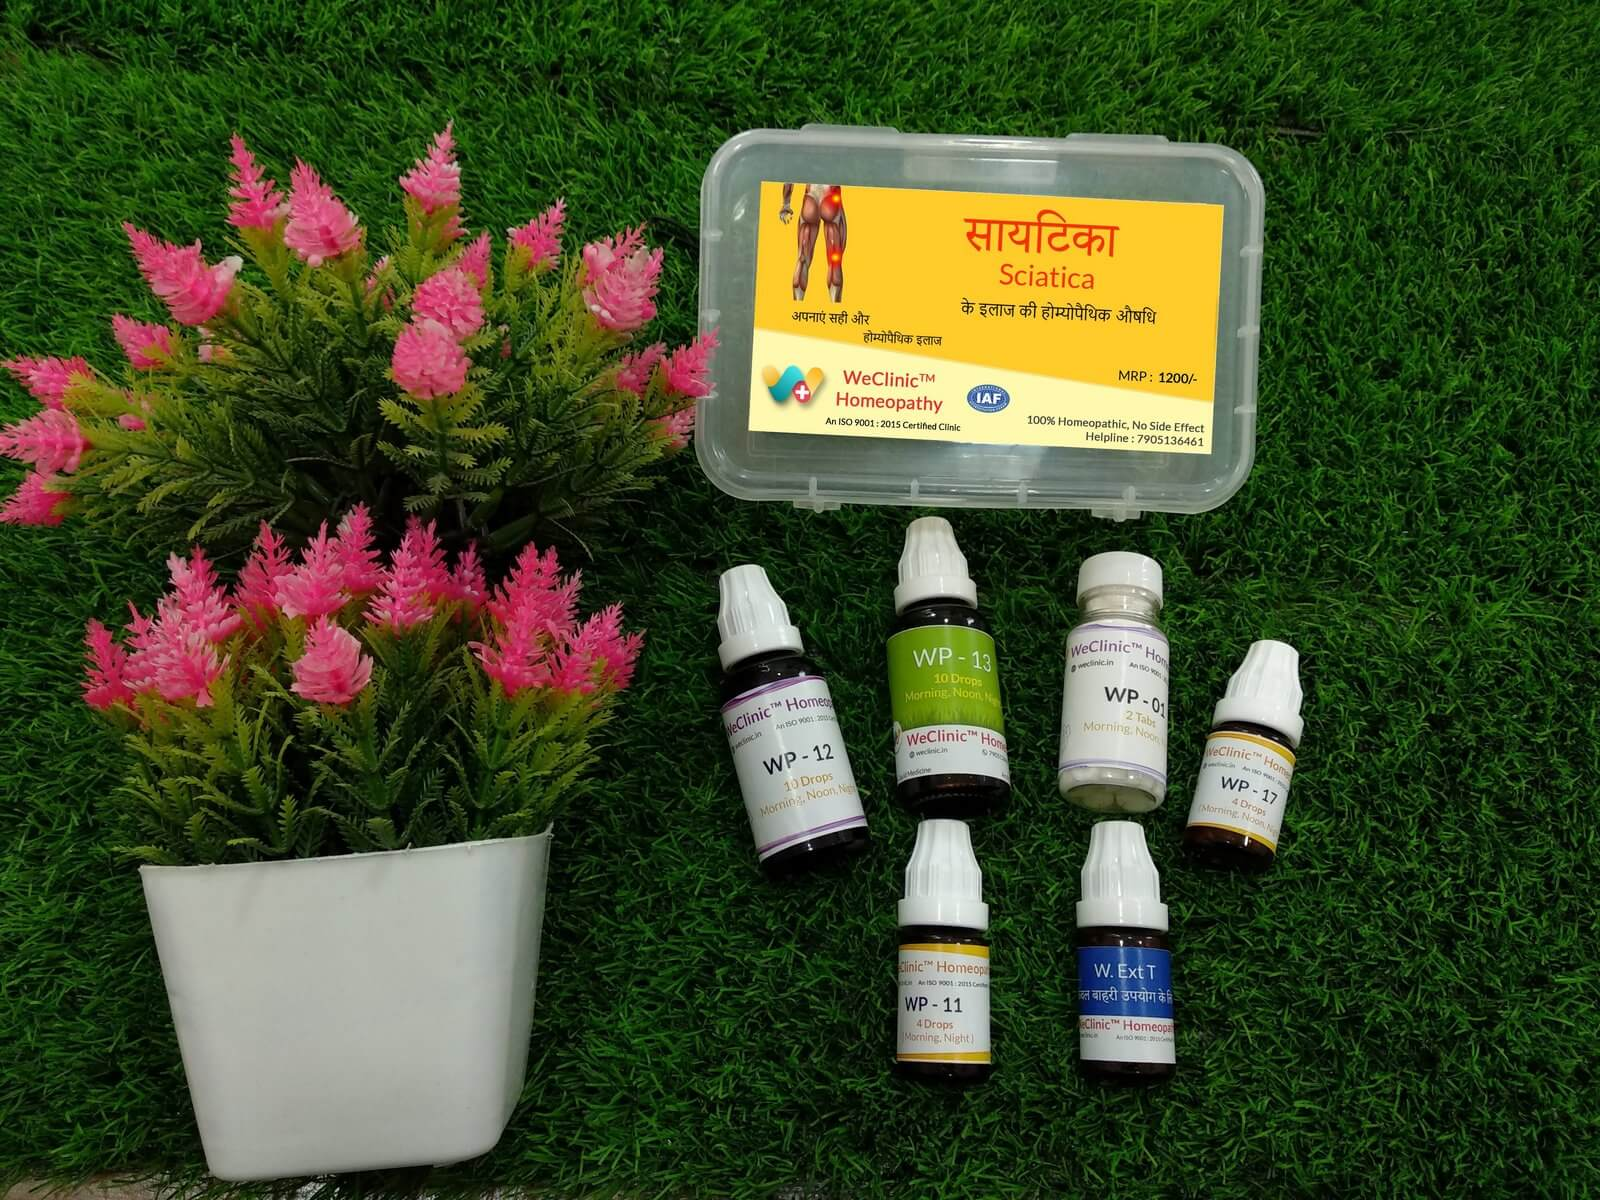 Sciatica treatment WeClinic Homeopathy